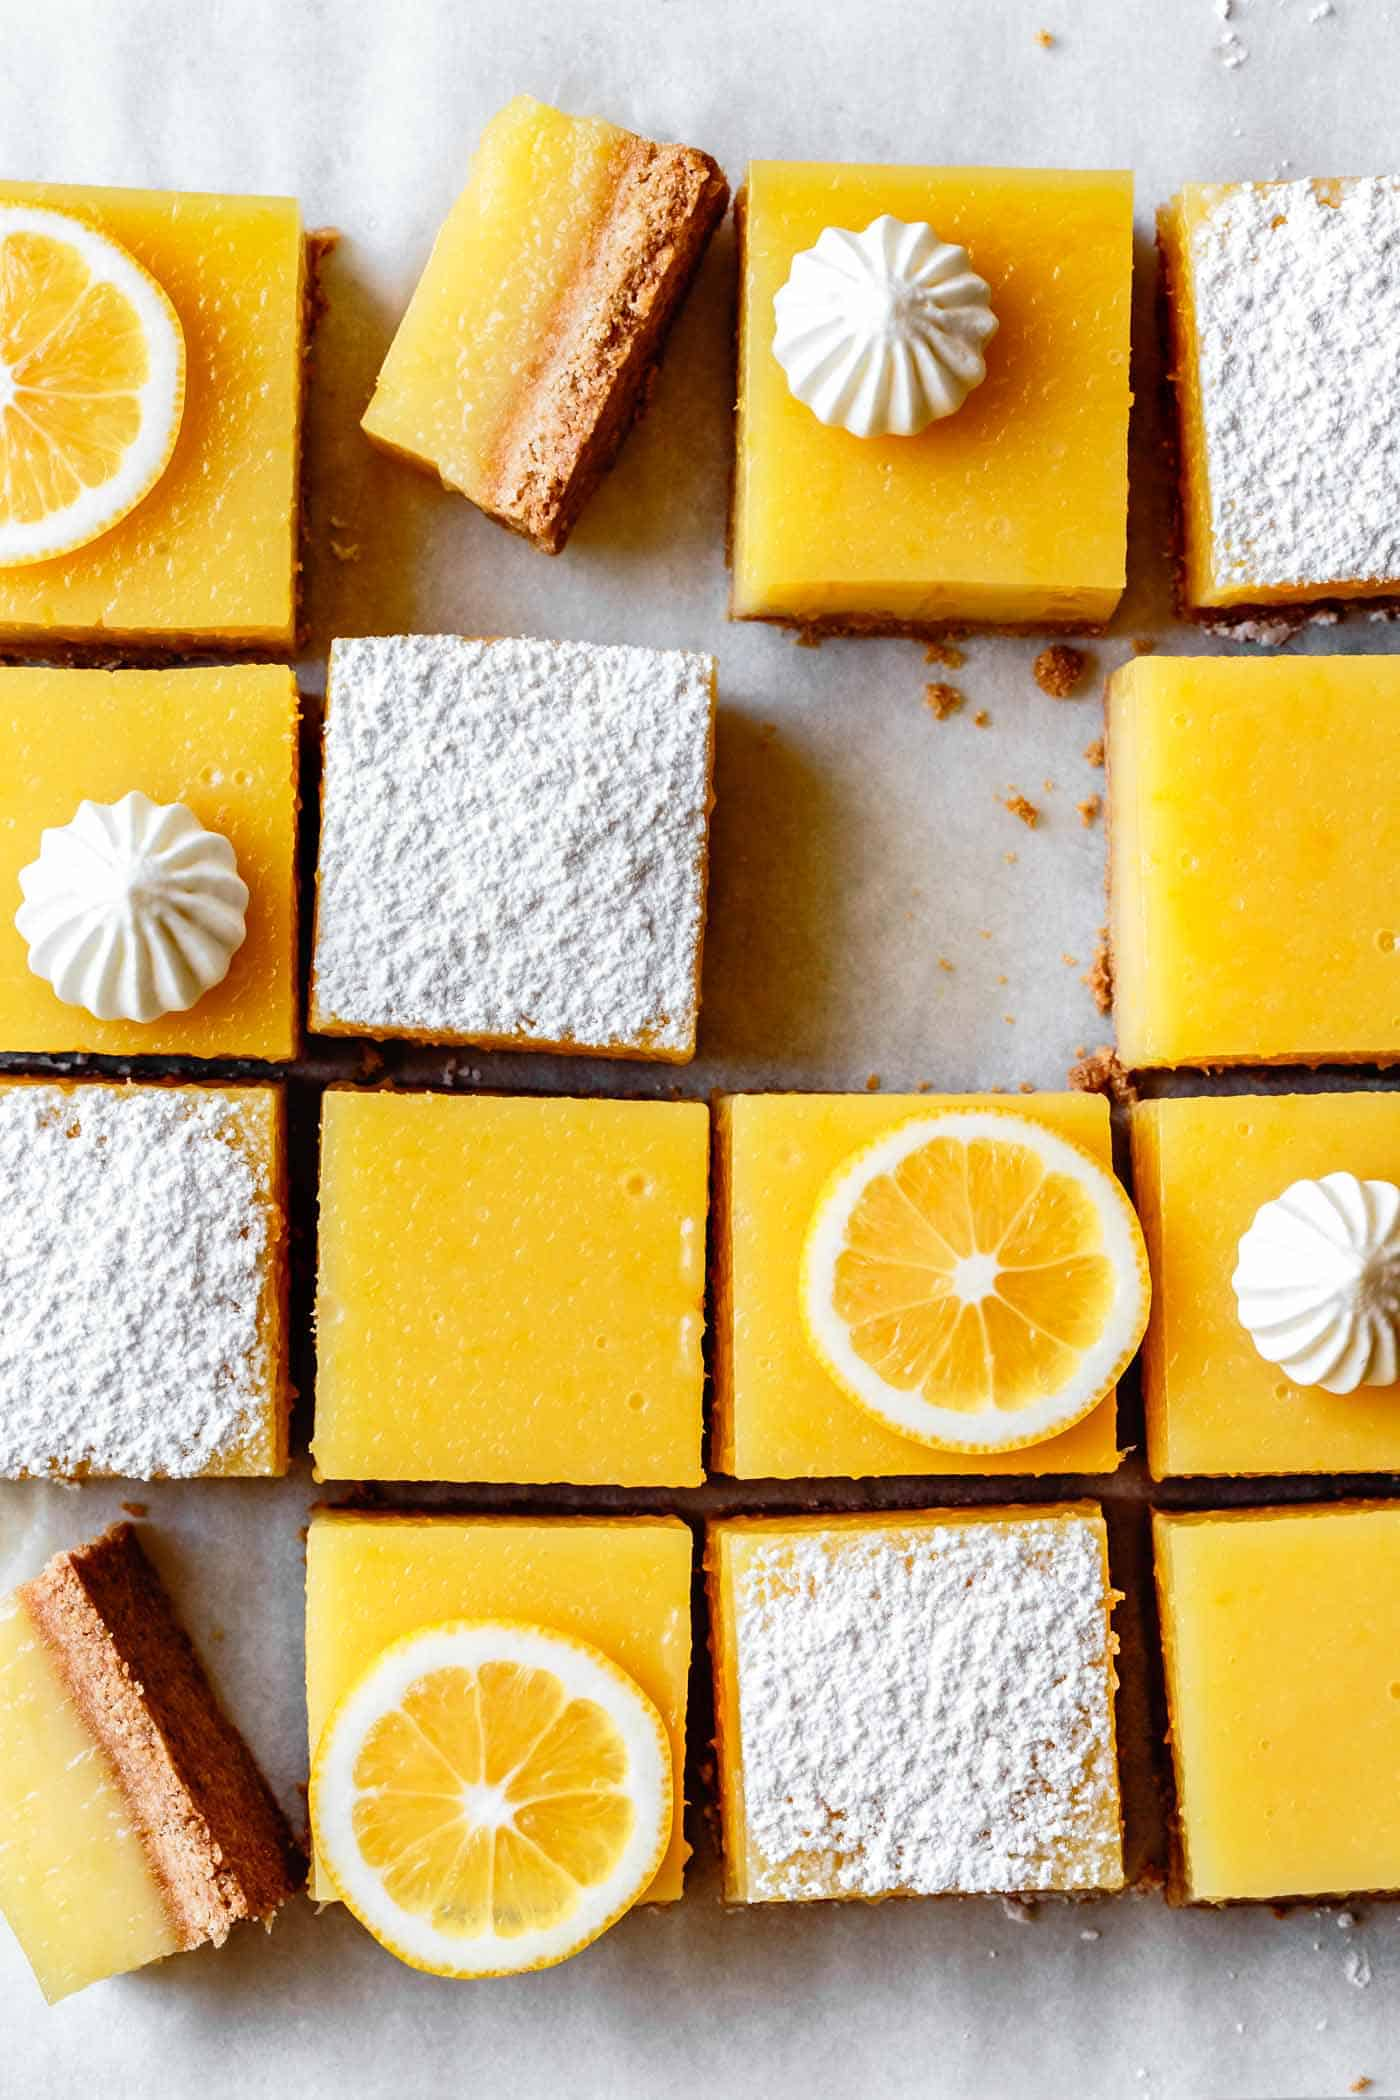 Gluten-free lemon squares or lemon bars, decorated for serving (close-up)